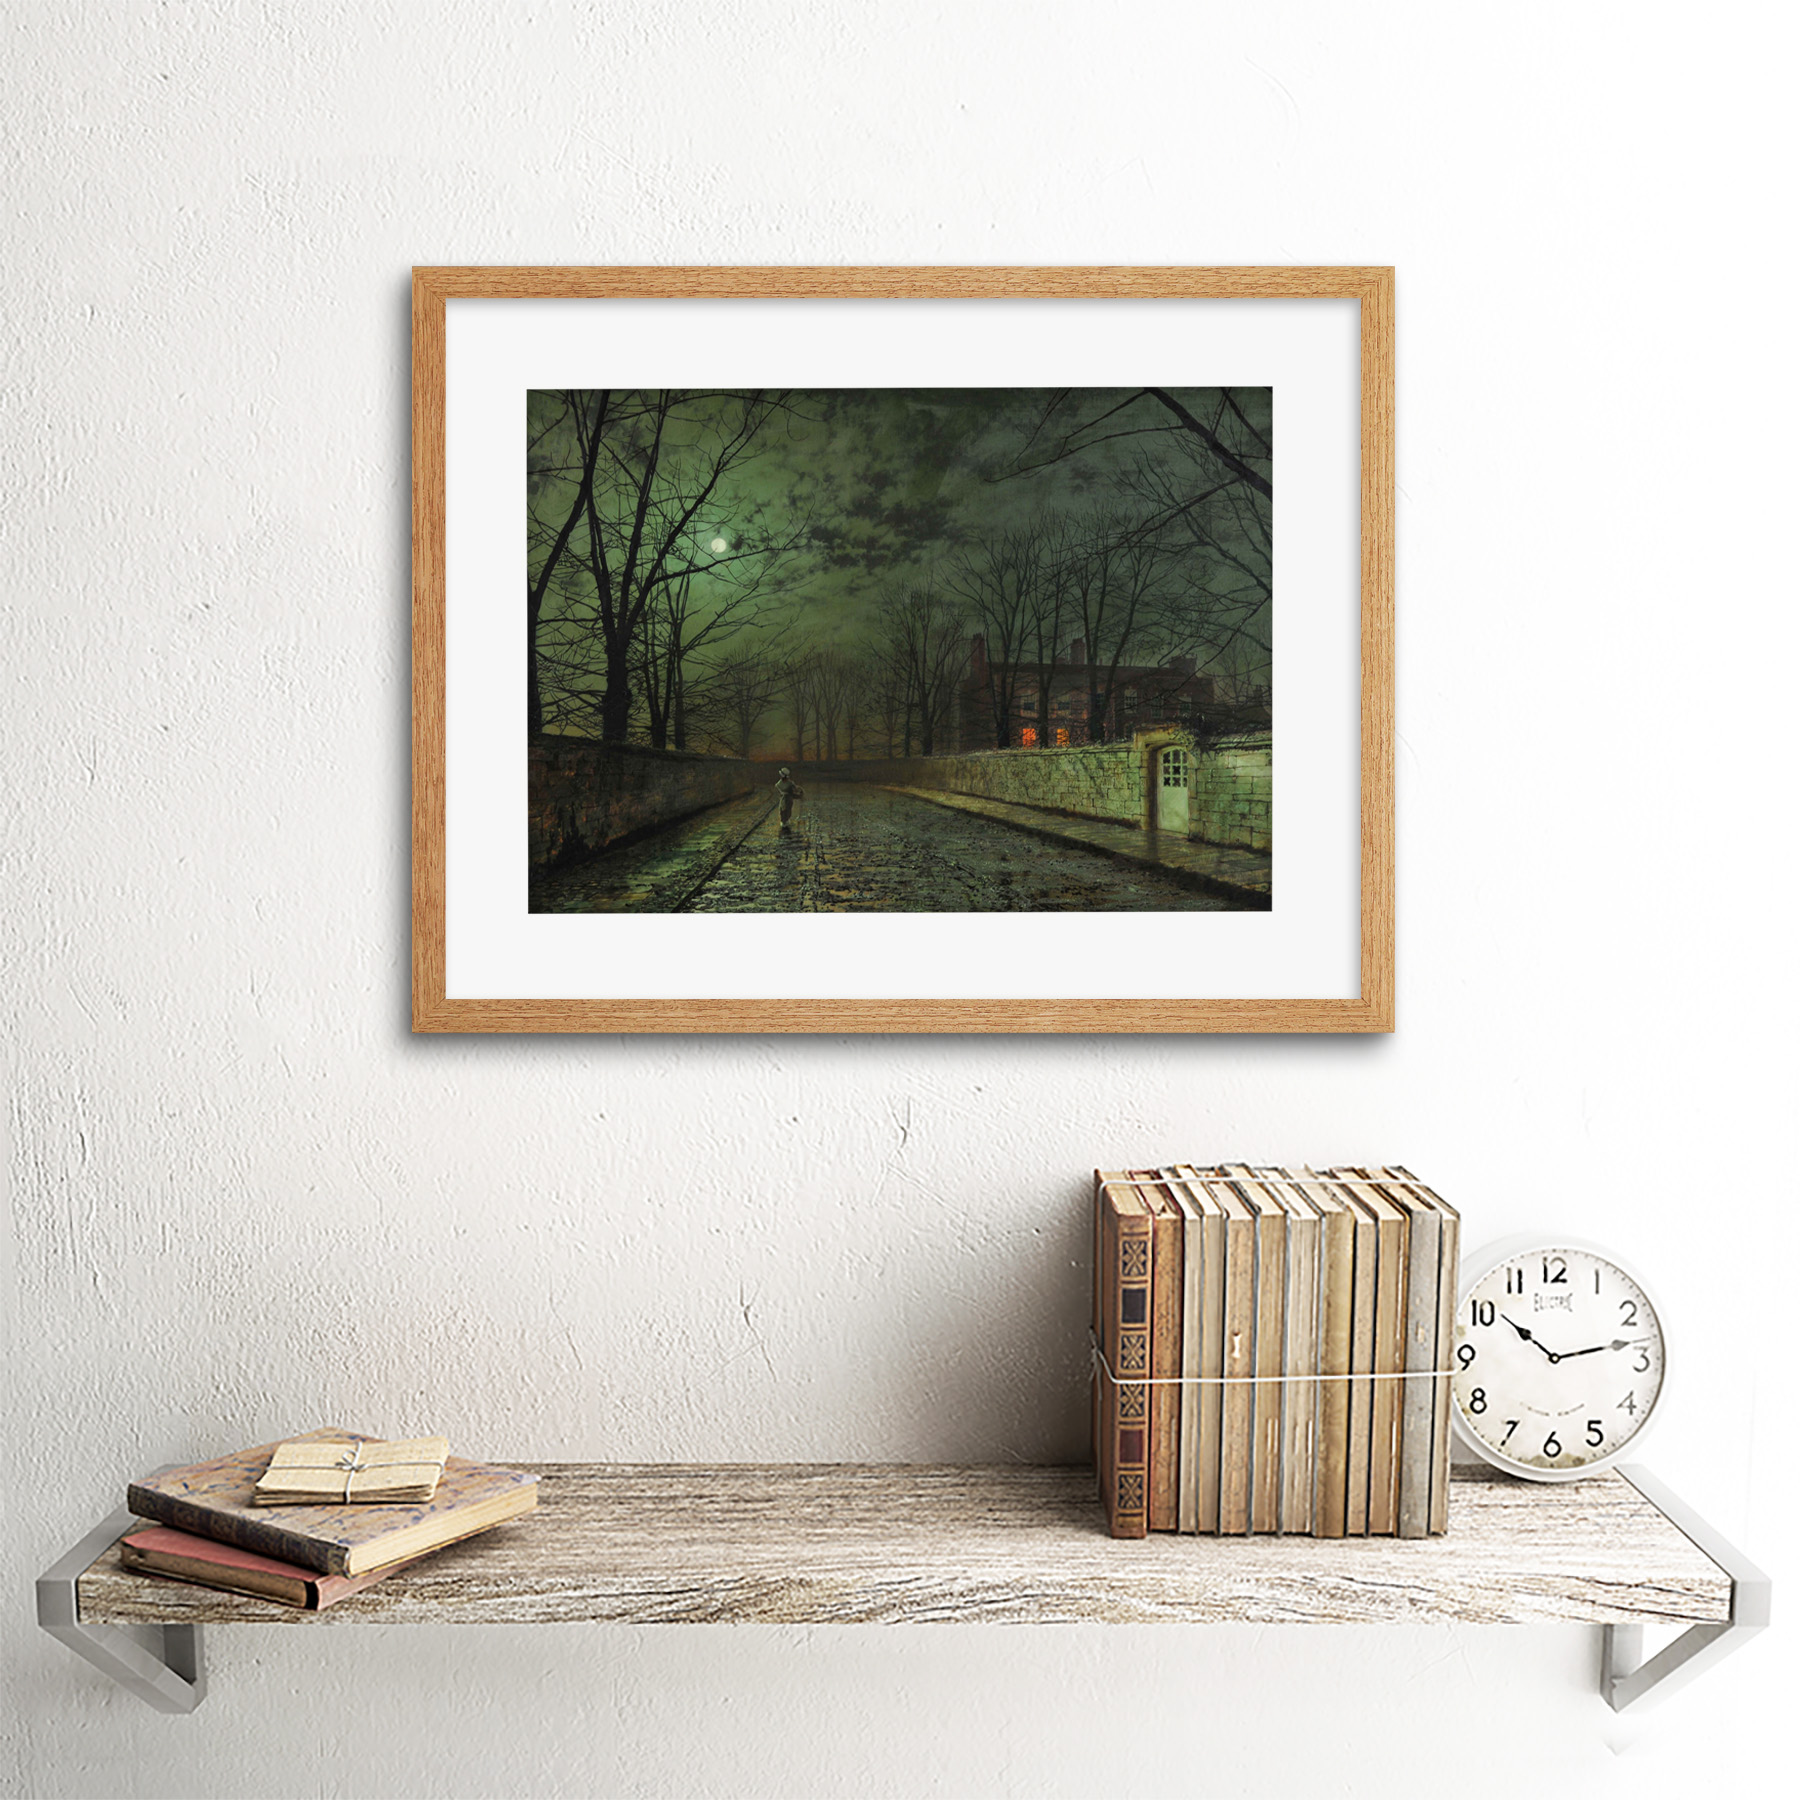 thumbnail 13 - Grimshaw-Moonlit-Street-Painting-Framed-Art-Print-Picture-Mount-12x16-Inch